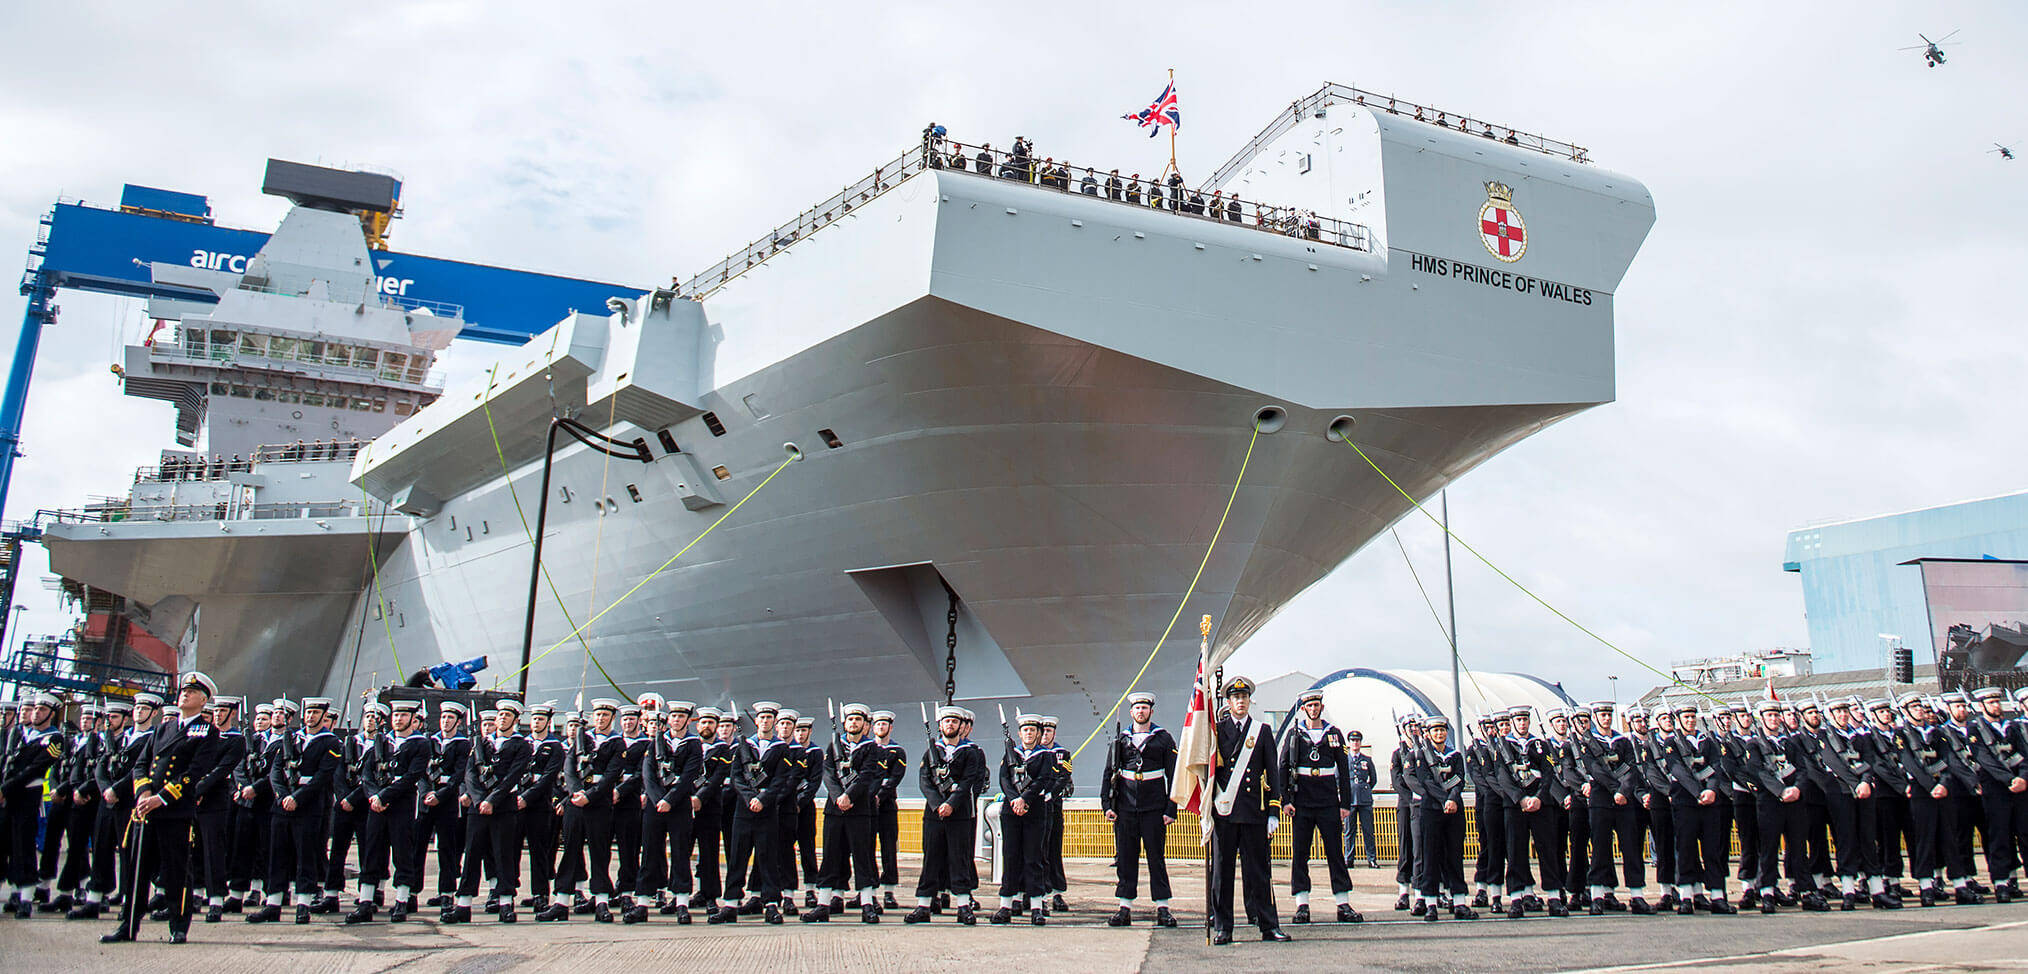 HMS Prince of Wales formally named – another step towards renewing aircraft carrier capability